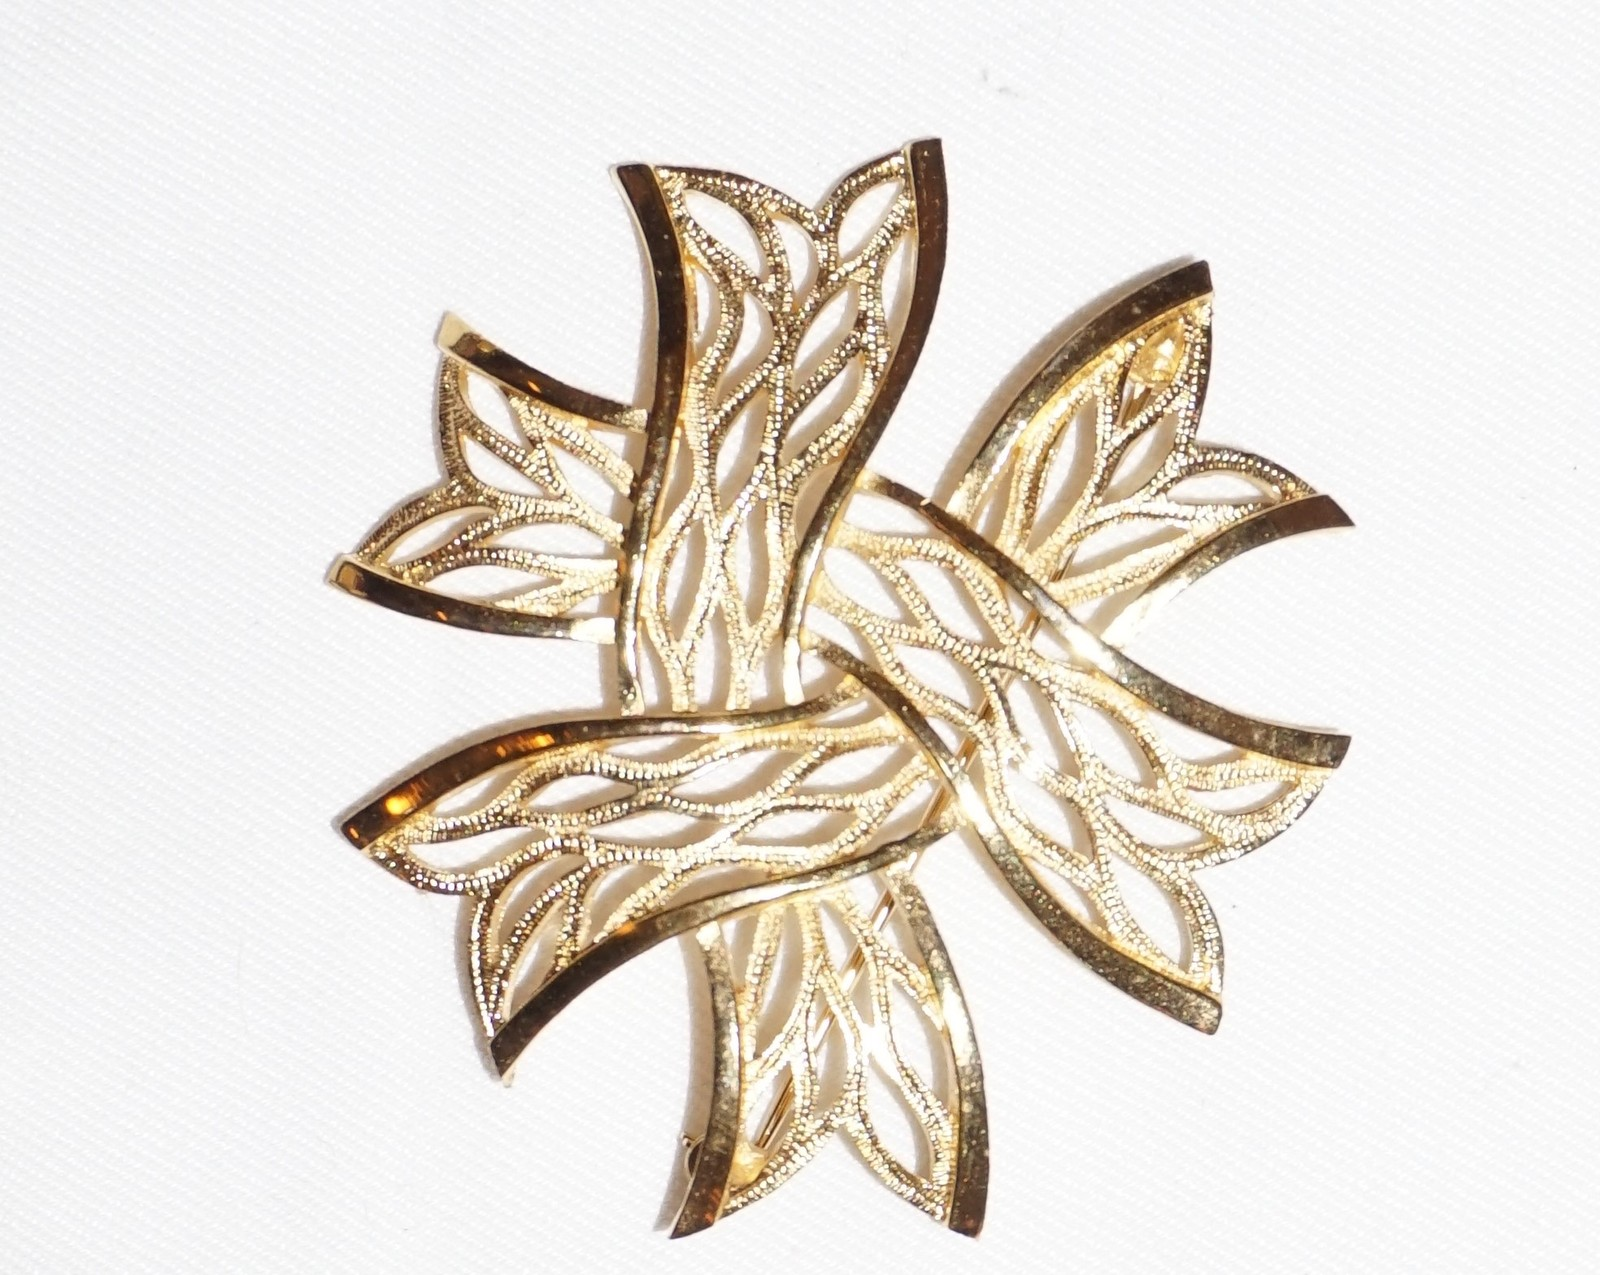 Primary image for Trifari Brushed & Polished Goldtone Ribbon Brooch Vintage Jewelry